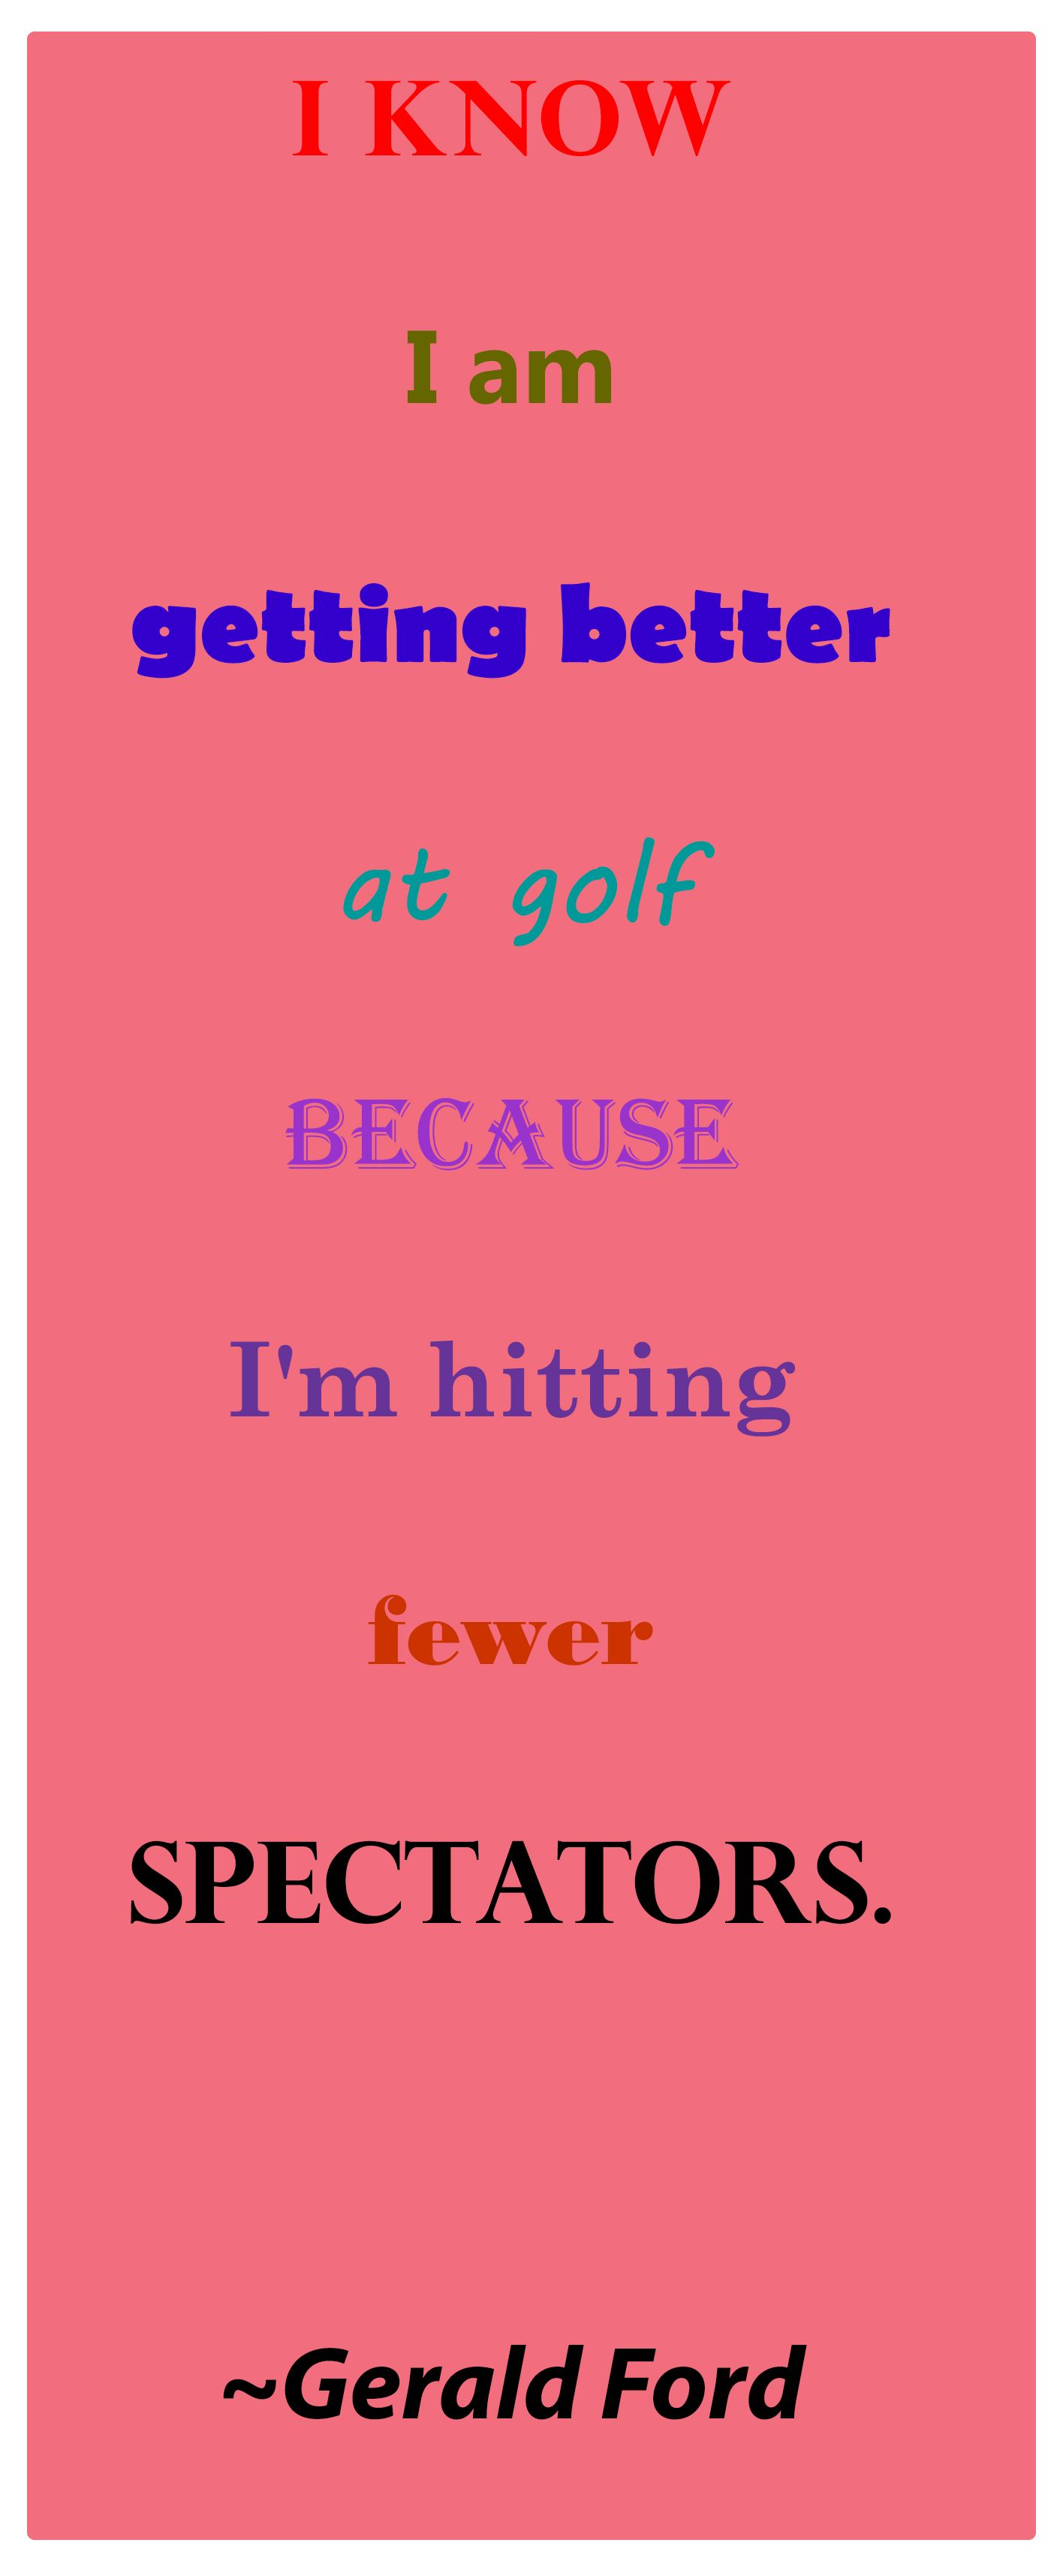 Gerald Ford Quotes I Know I Am Getting Better At Golf Because I'm Hitting Fewer